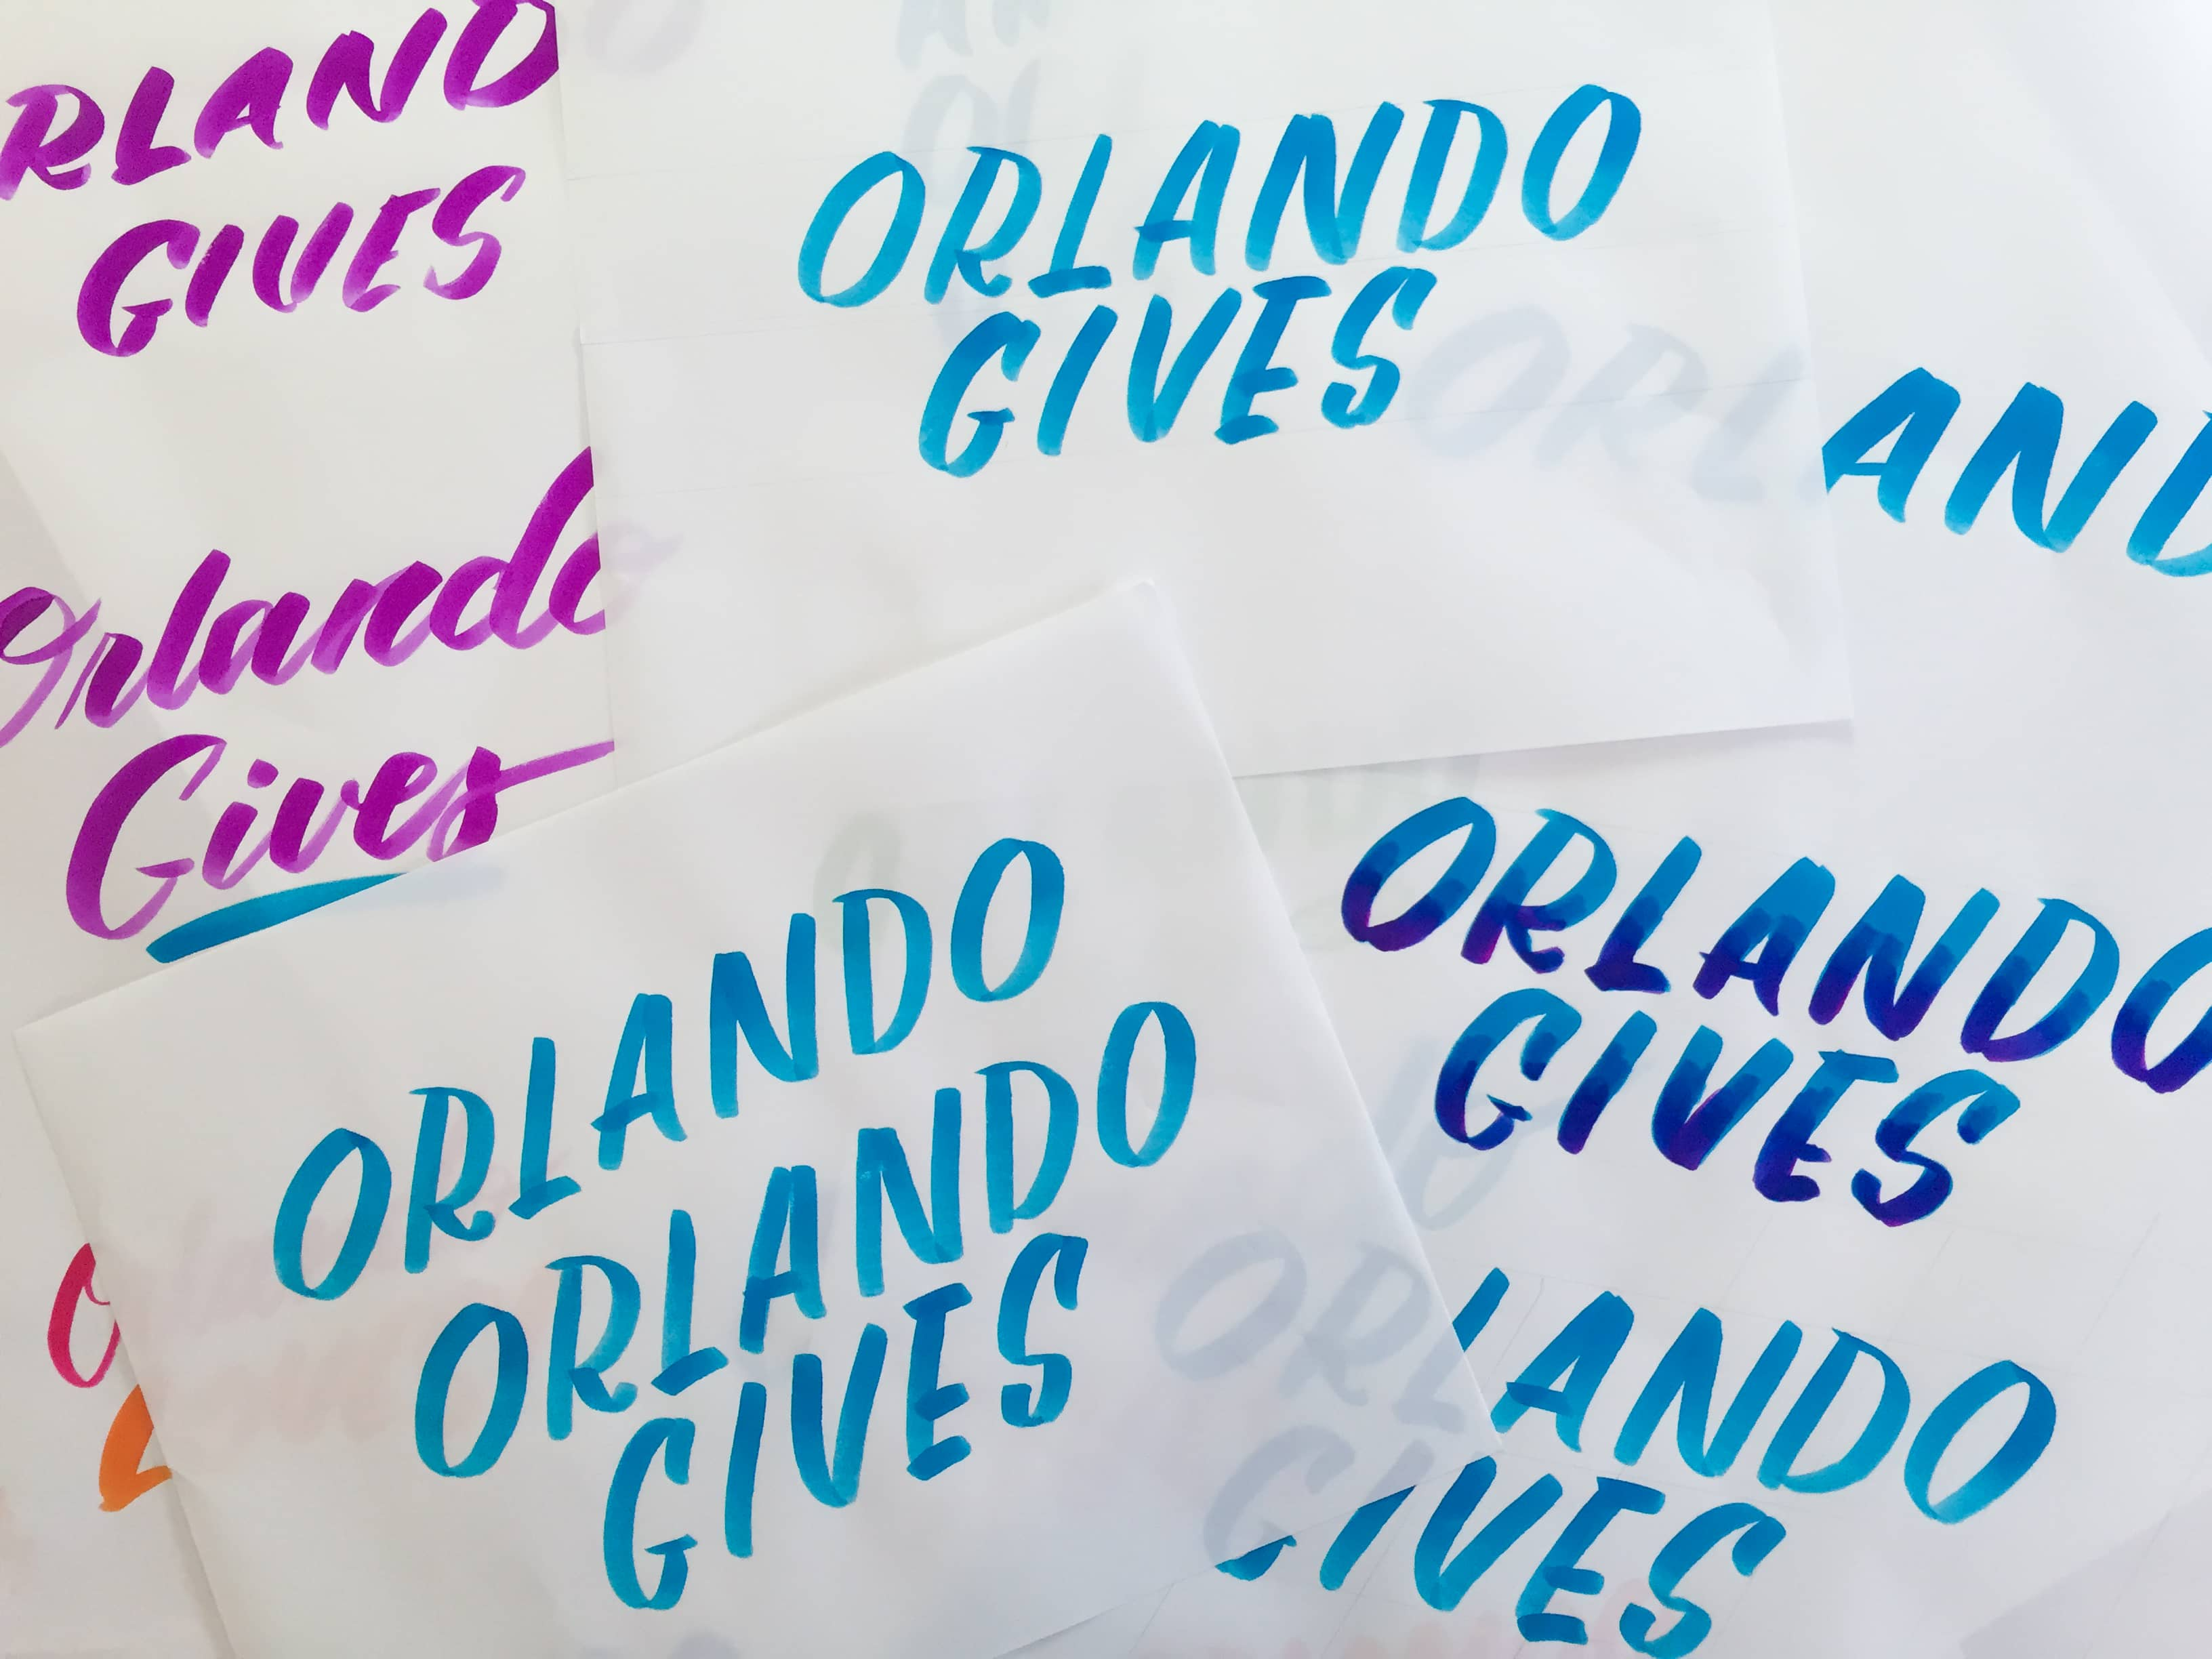 Orlando Gives hand-lettering by Hillery Powers constellation mural for Rethink Homelessness blue pink white